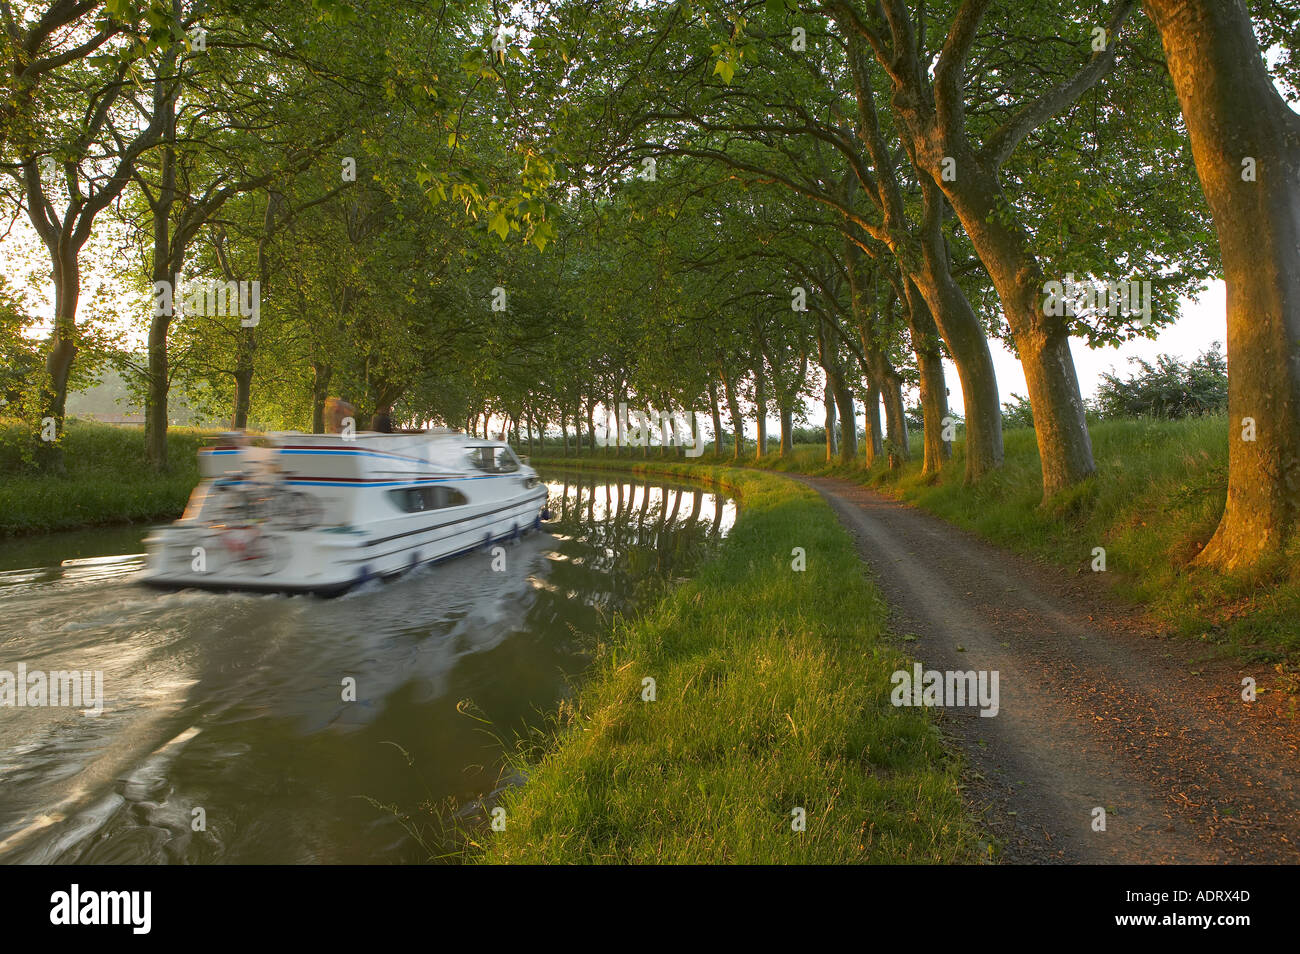 Canal boat on the Canal du Midi nr Carcassonne Languedoc France - Stock Image